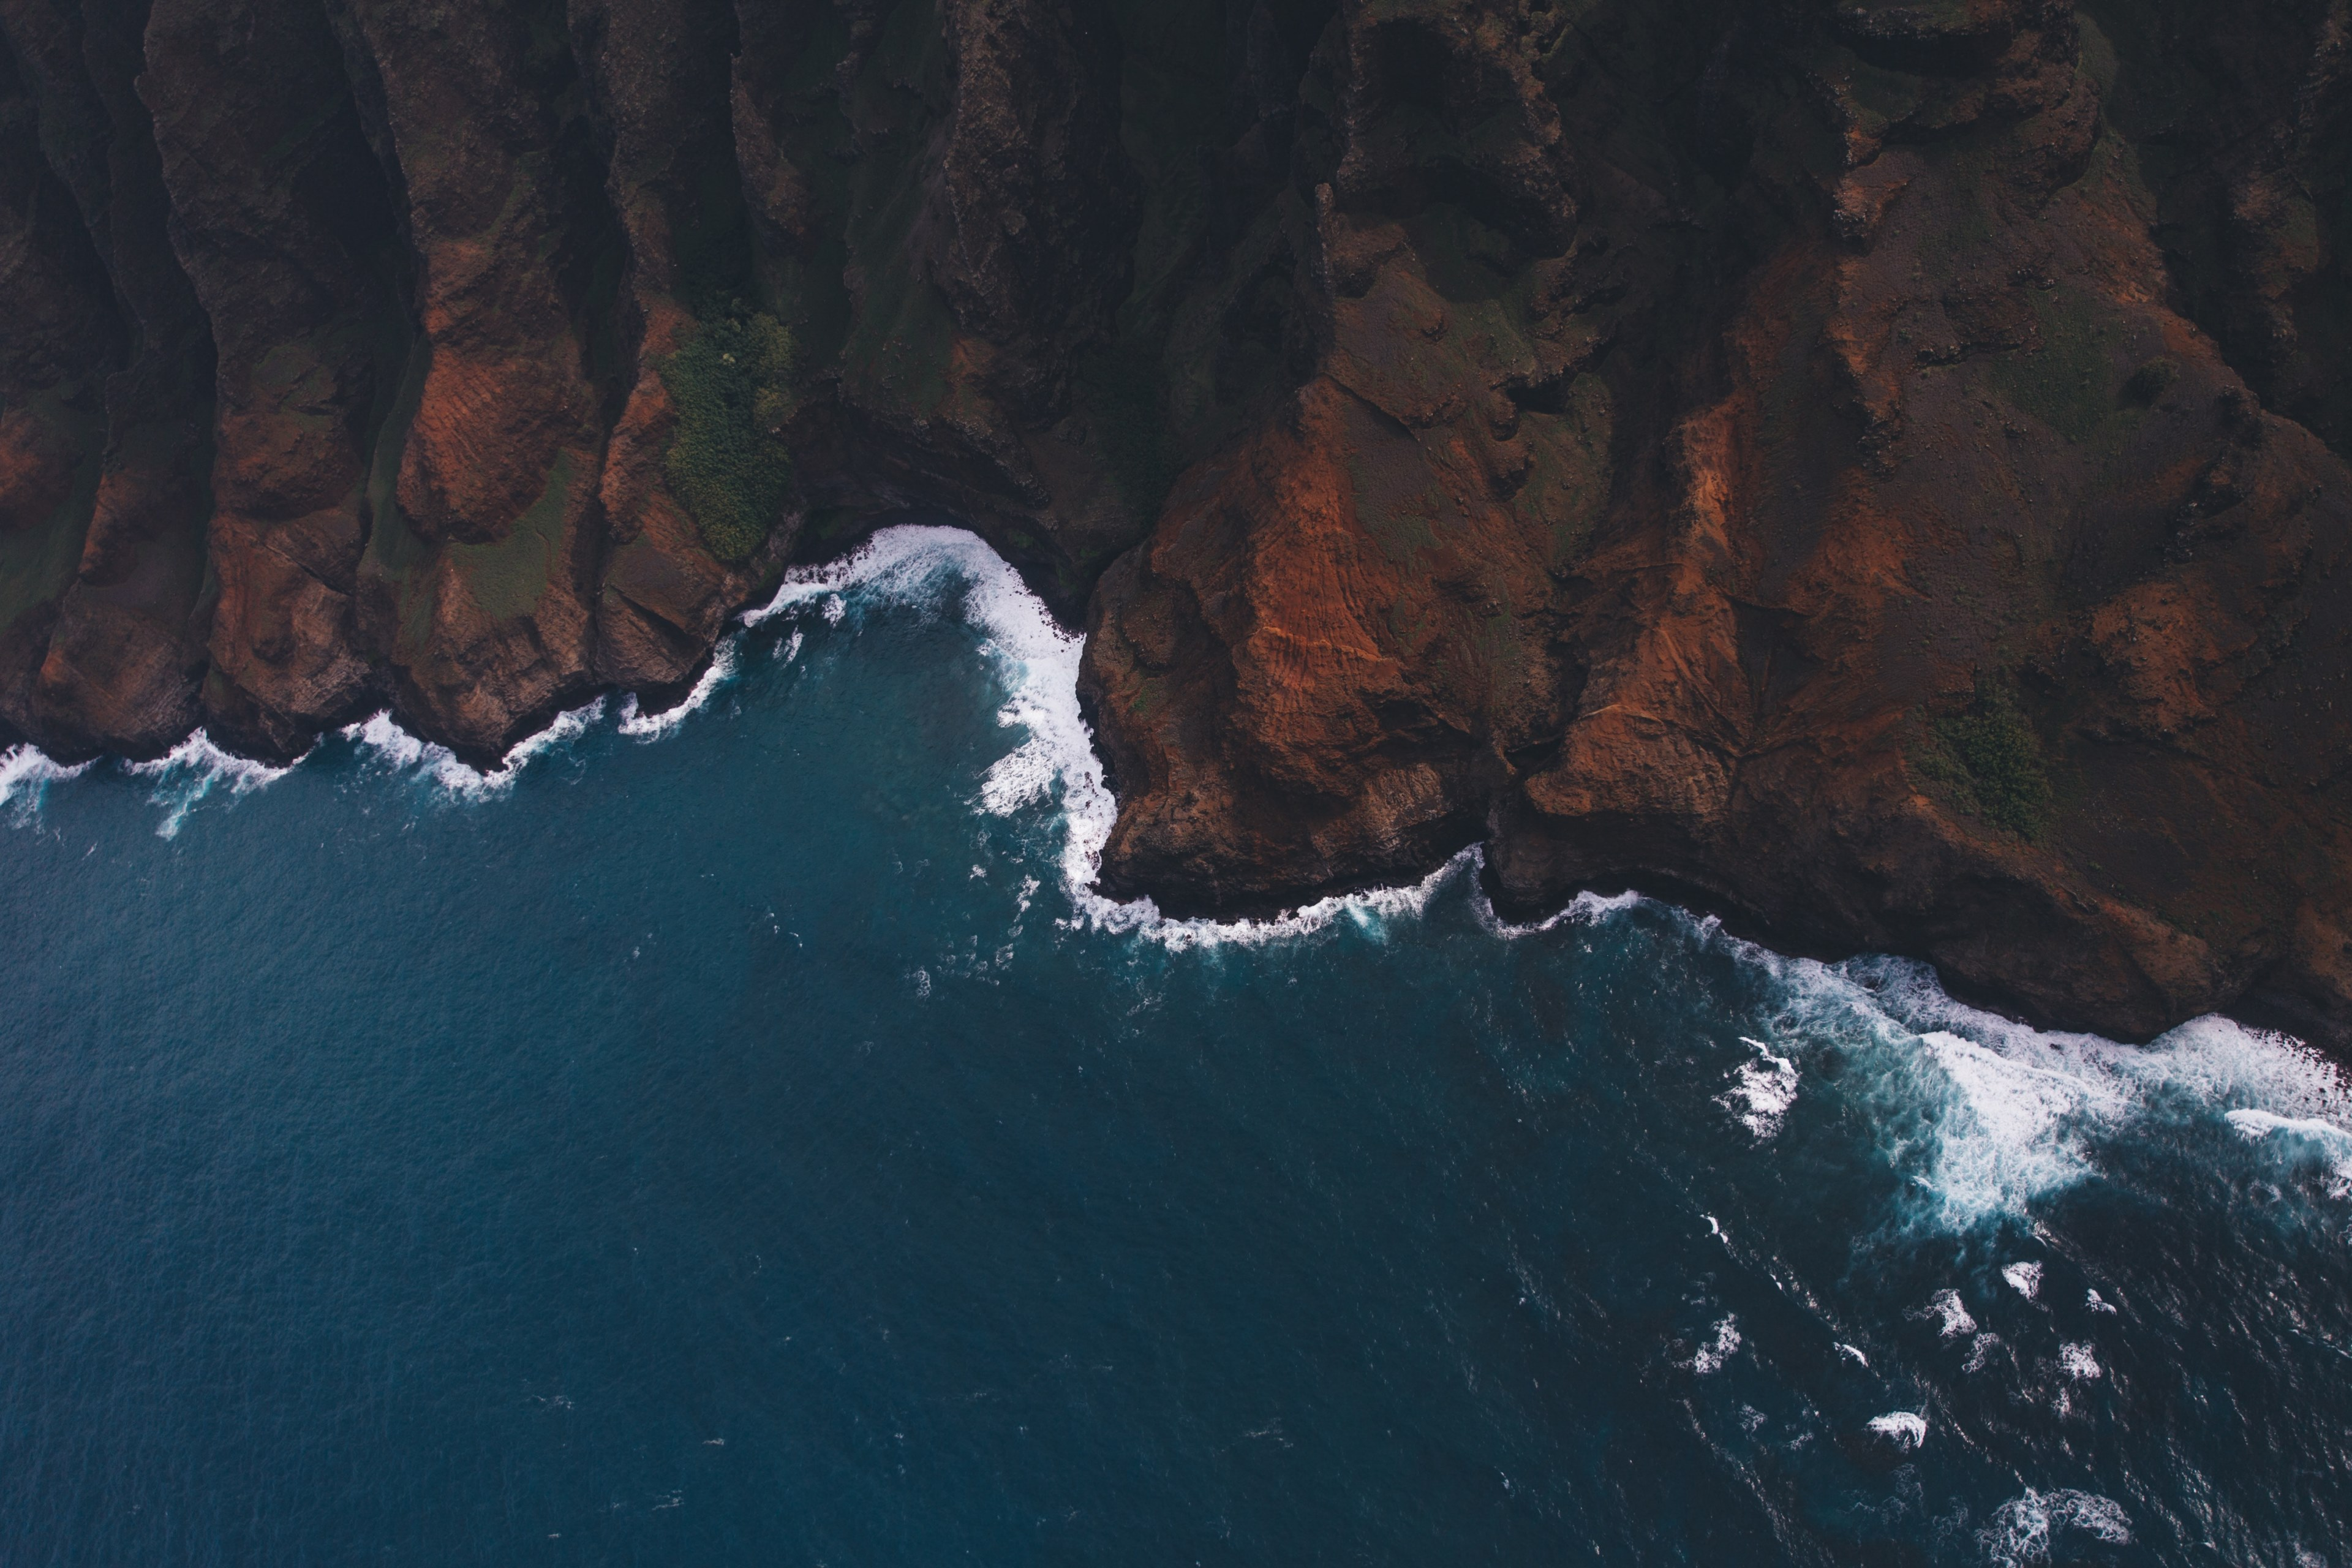 coast aerial view water and sea hd 4k wallpaper and background 3840x2560